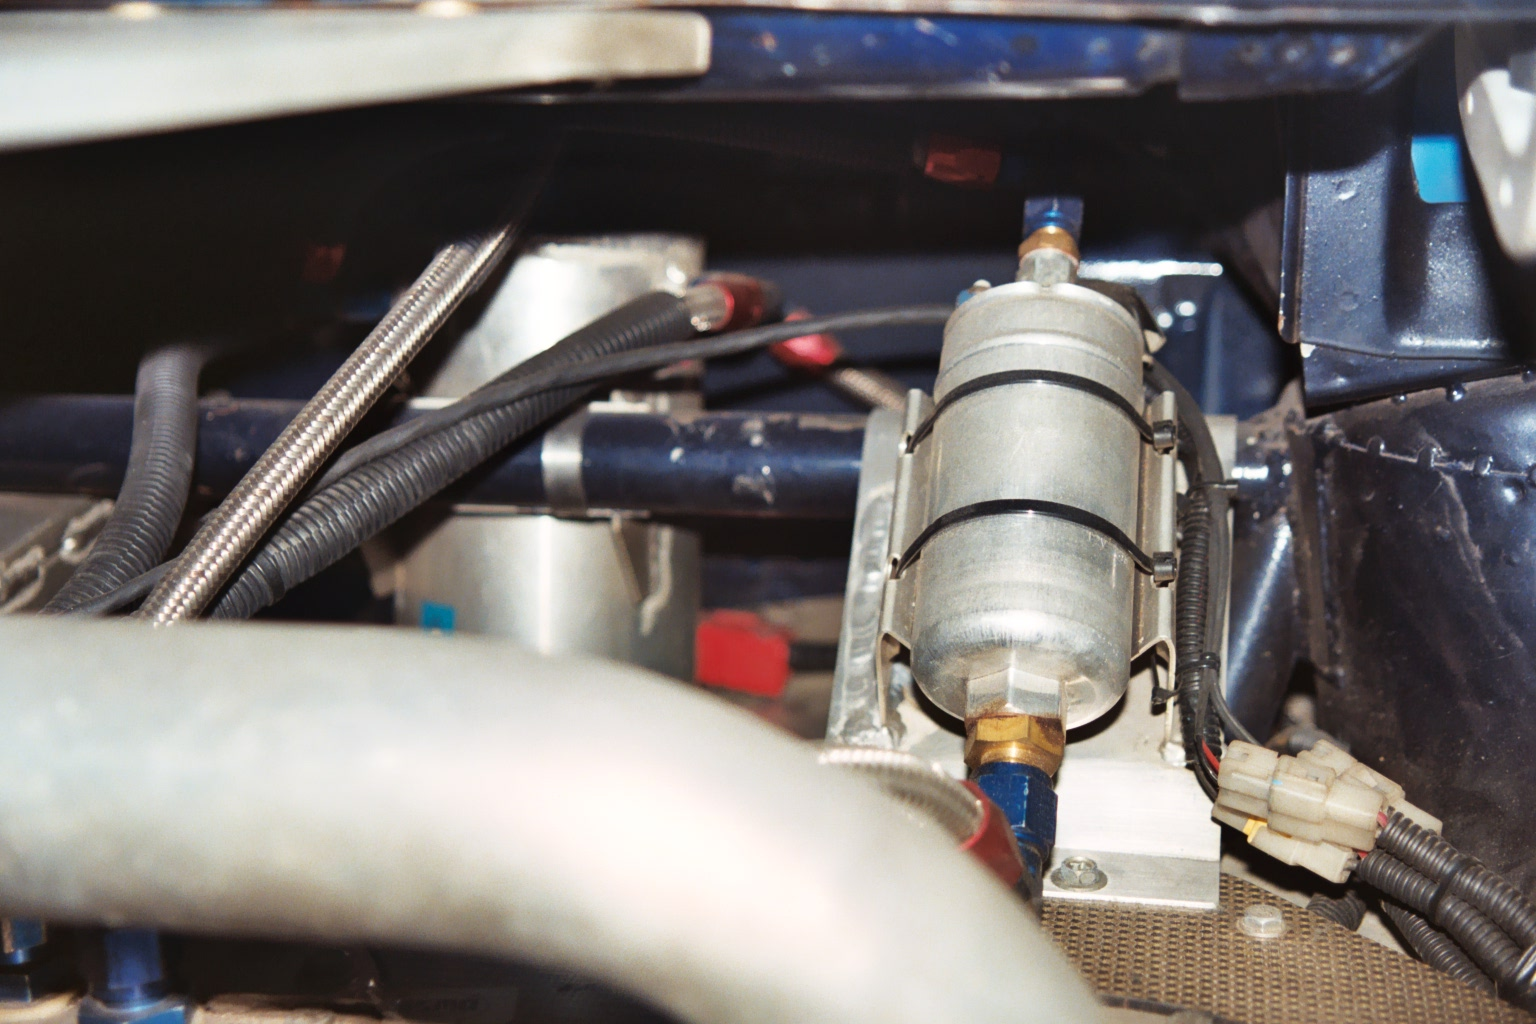 Nissan Skyline Gt R S In The Usa Blog Fuel System For Club Car Pump Problems Bosch 044 As A Reserve R34 N1 Super Taikyu